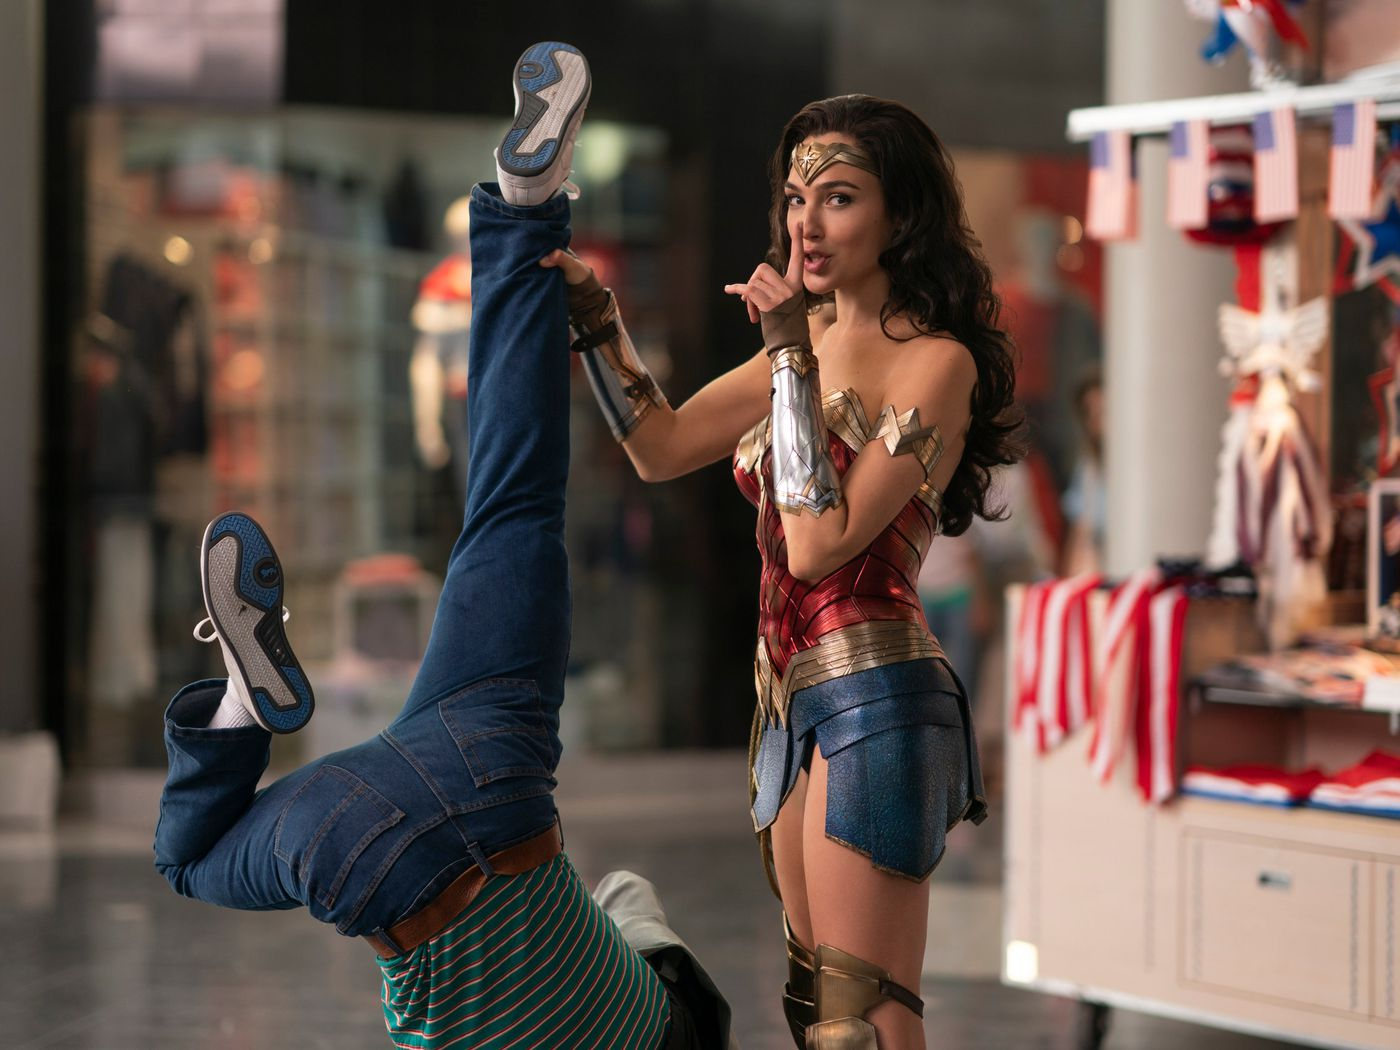 Wonder Woman 1984 Will Stream On Hbo Max Starting On Christmas For No Extra Cost Vox A new era of wonder begins. wonder woman 1984 will stream on hbo